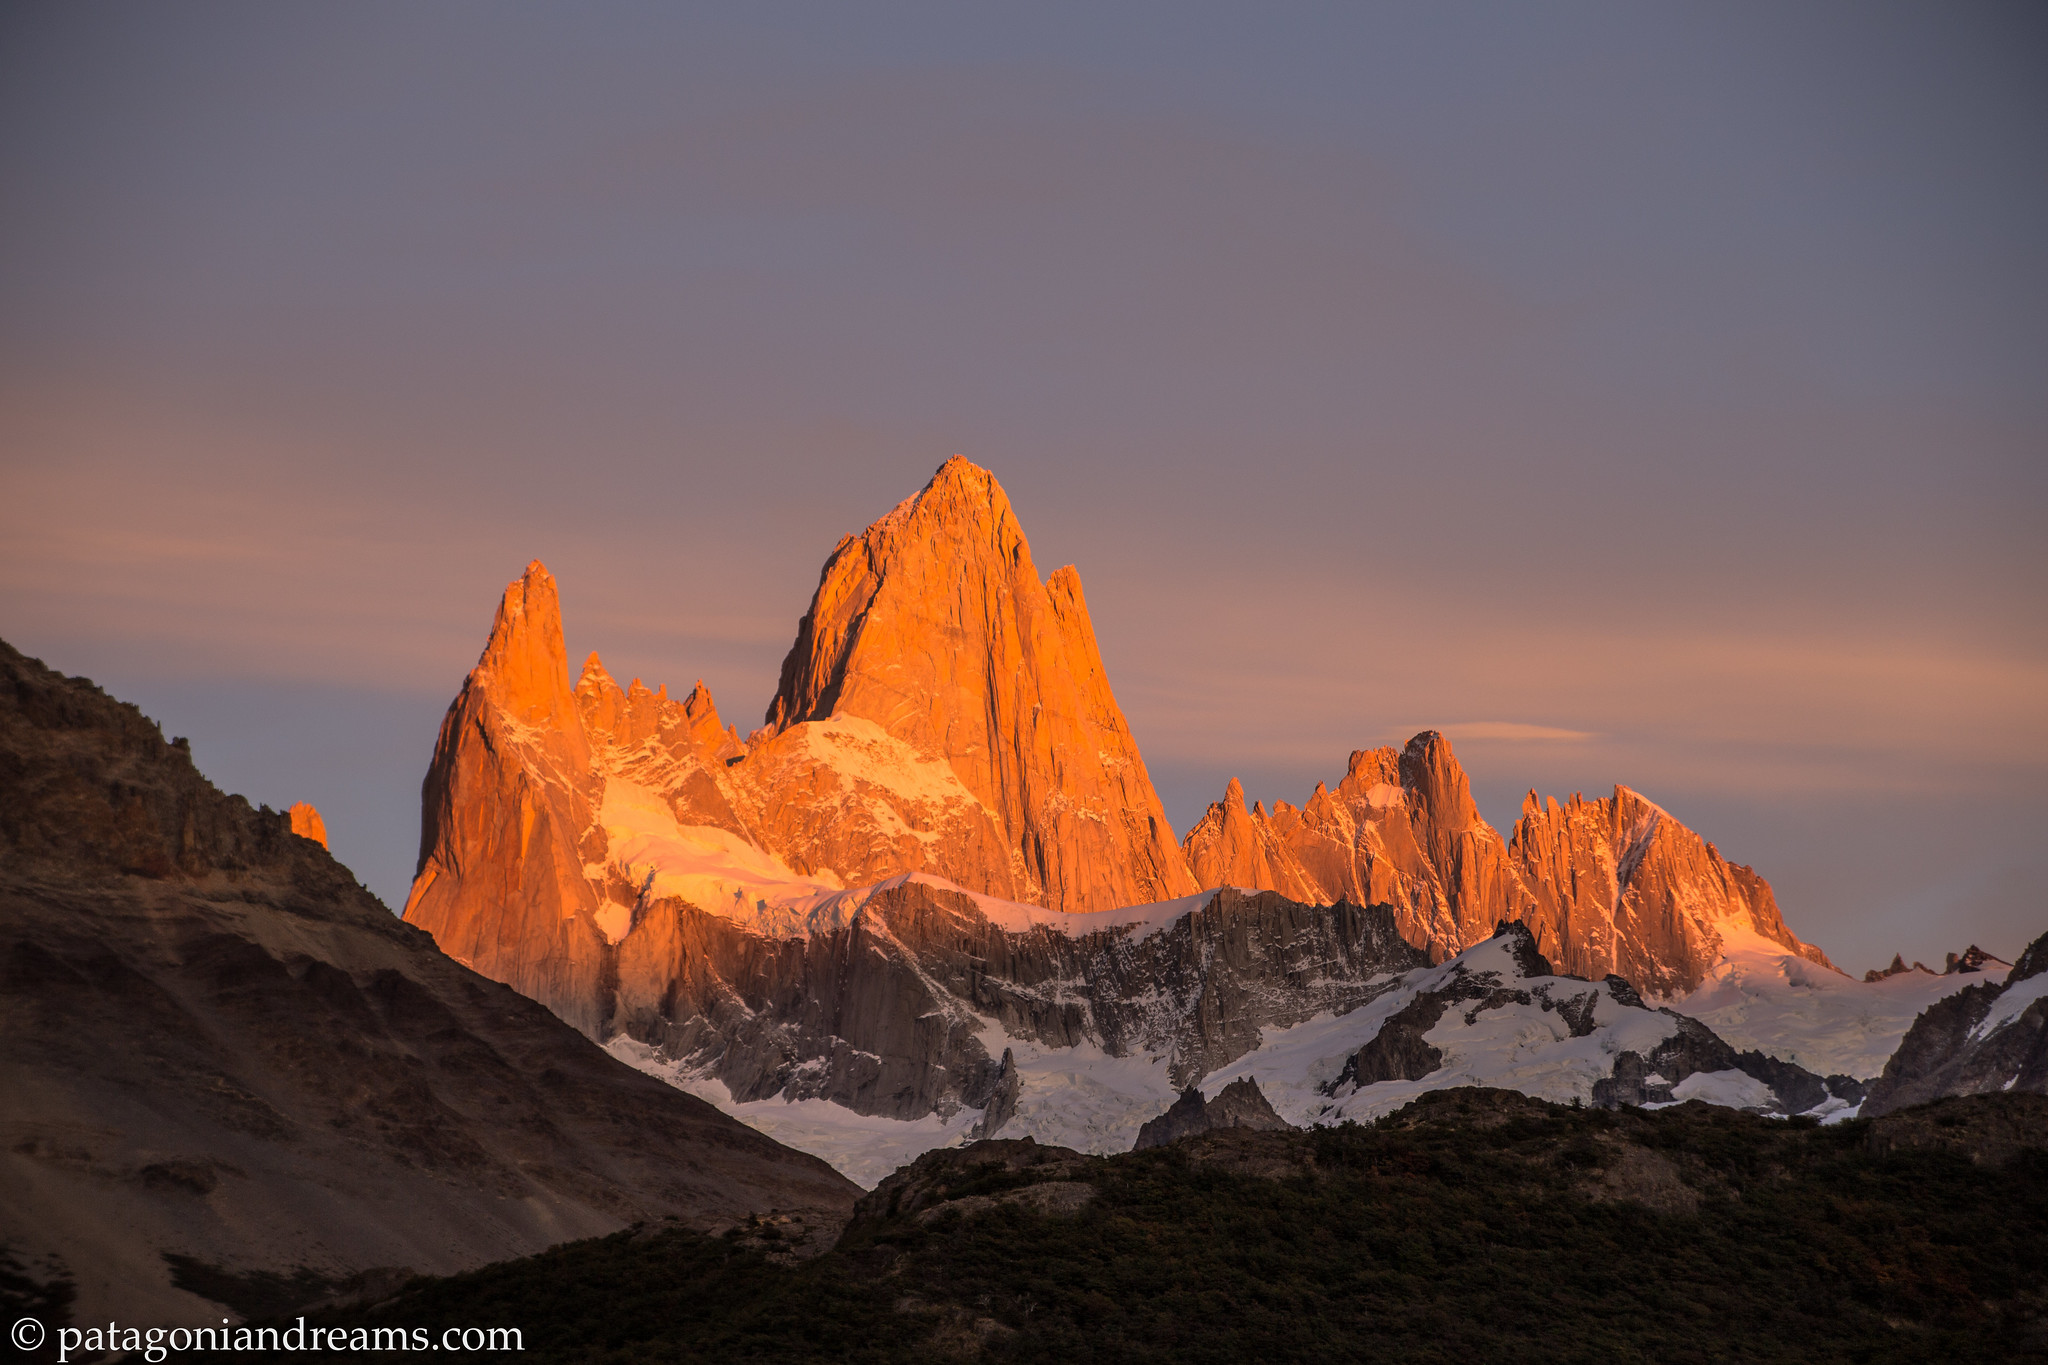 Morning alpenglow on Cerro Fitz Roy never dissapoints, as seen from Laguna Capri, day 4, NP Los Glaciares, Patagonia, Argentina.